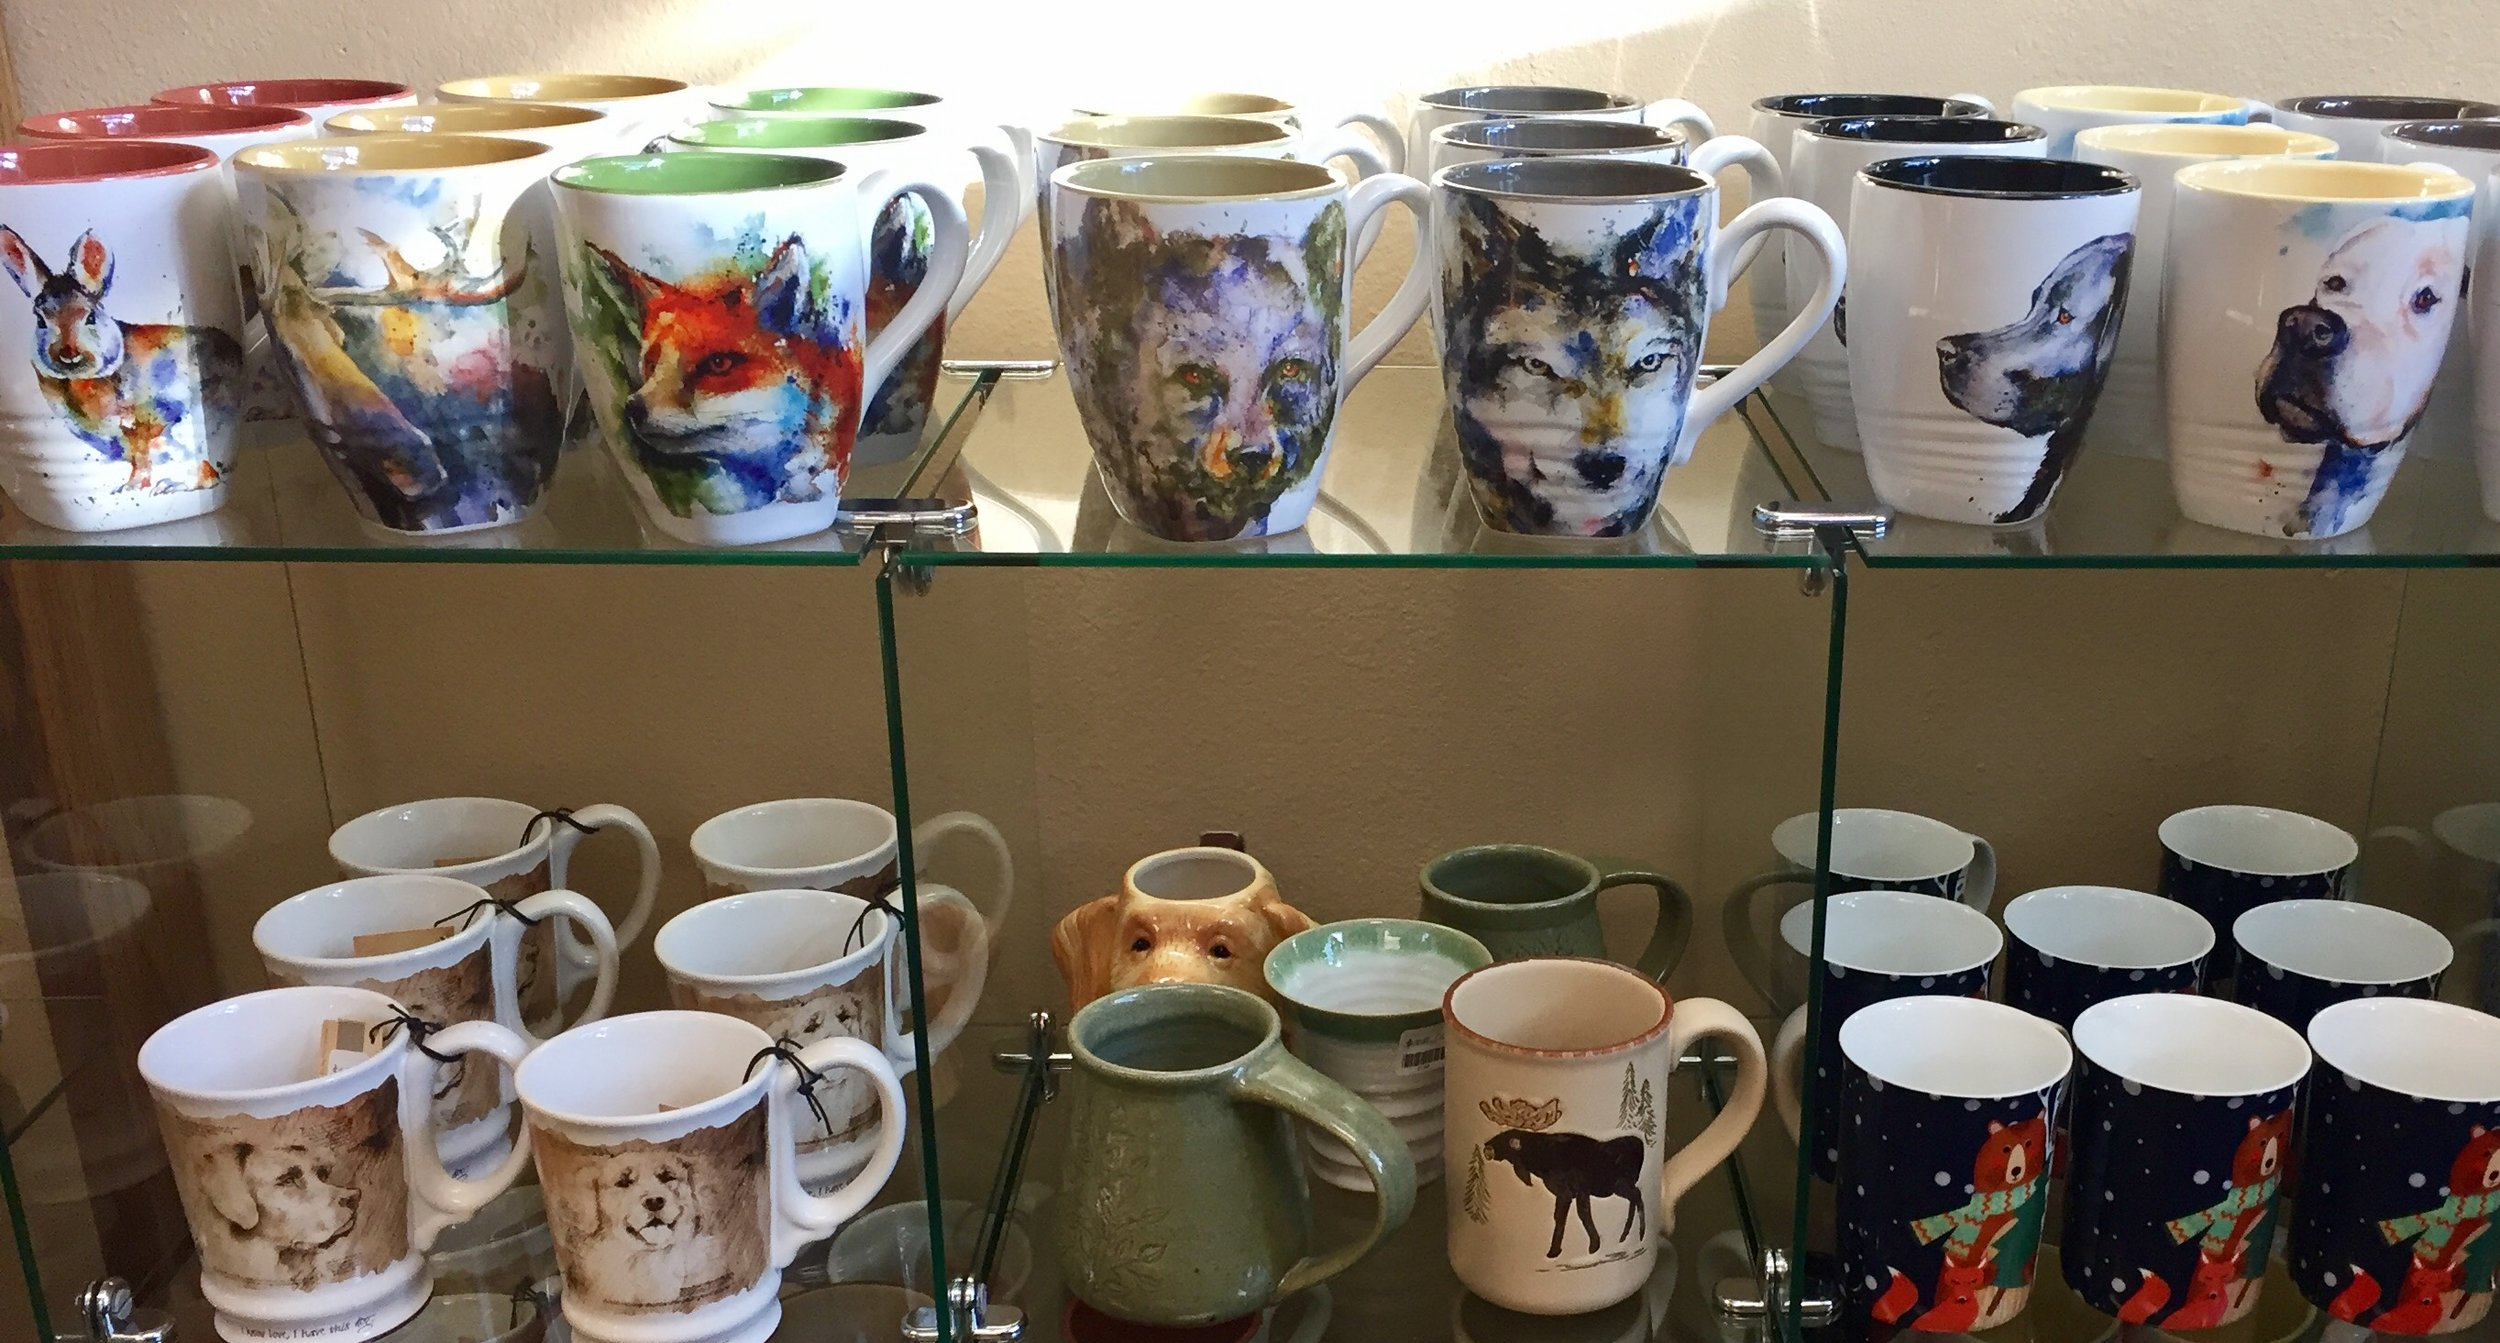 Speaking of warm drinks...this is just a small sample of the mugs we have available here at Frisco Fun & Formal!